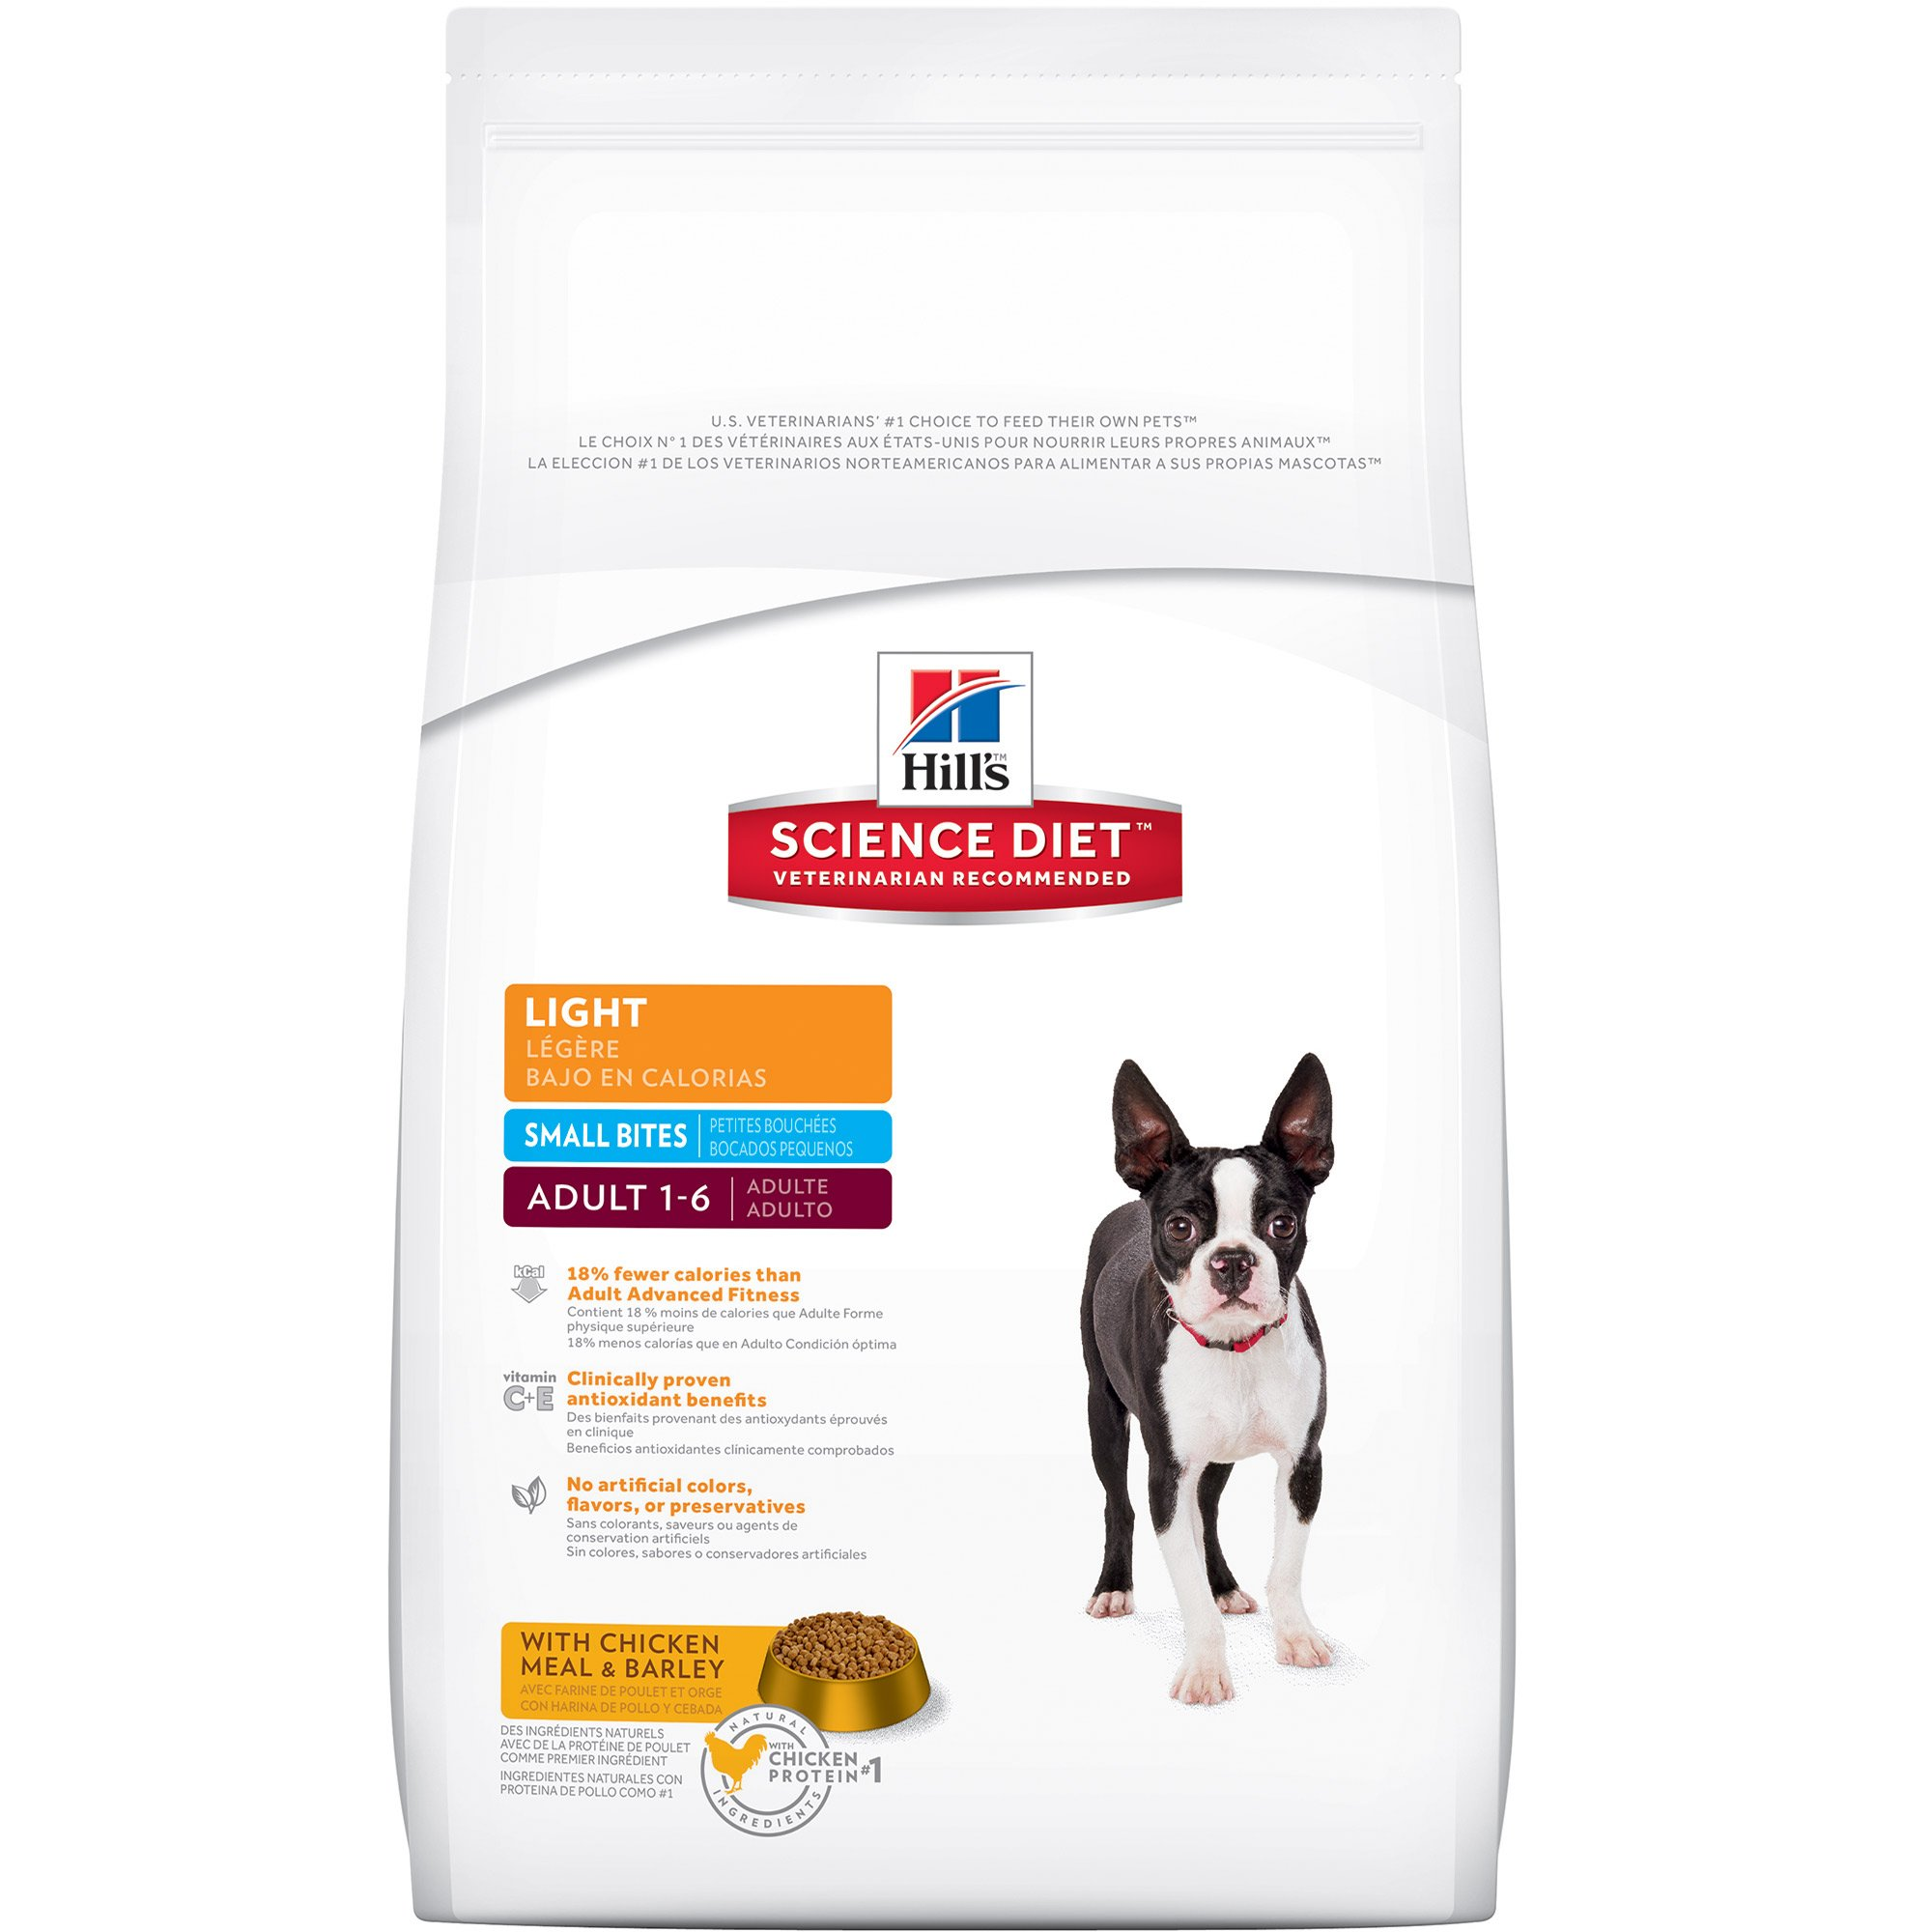 Hill's Science Diet Adult Light Dog Food, Small Bites with Chicken Meal & Barley for weight management, Dry Dog Food, 5 lb Bag